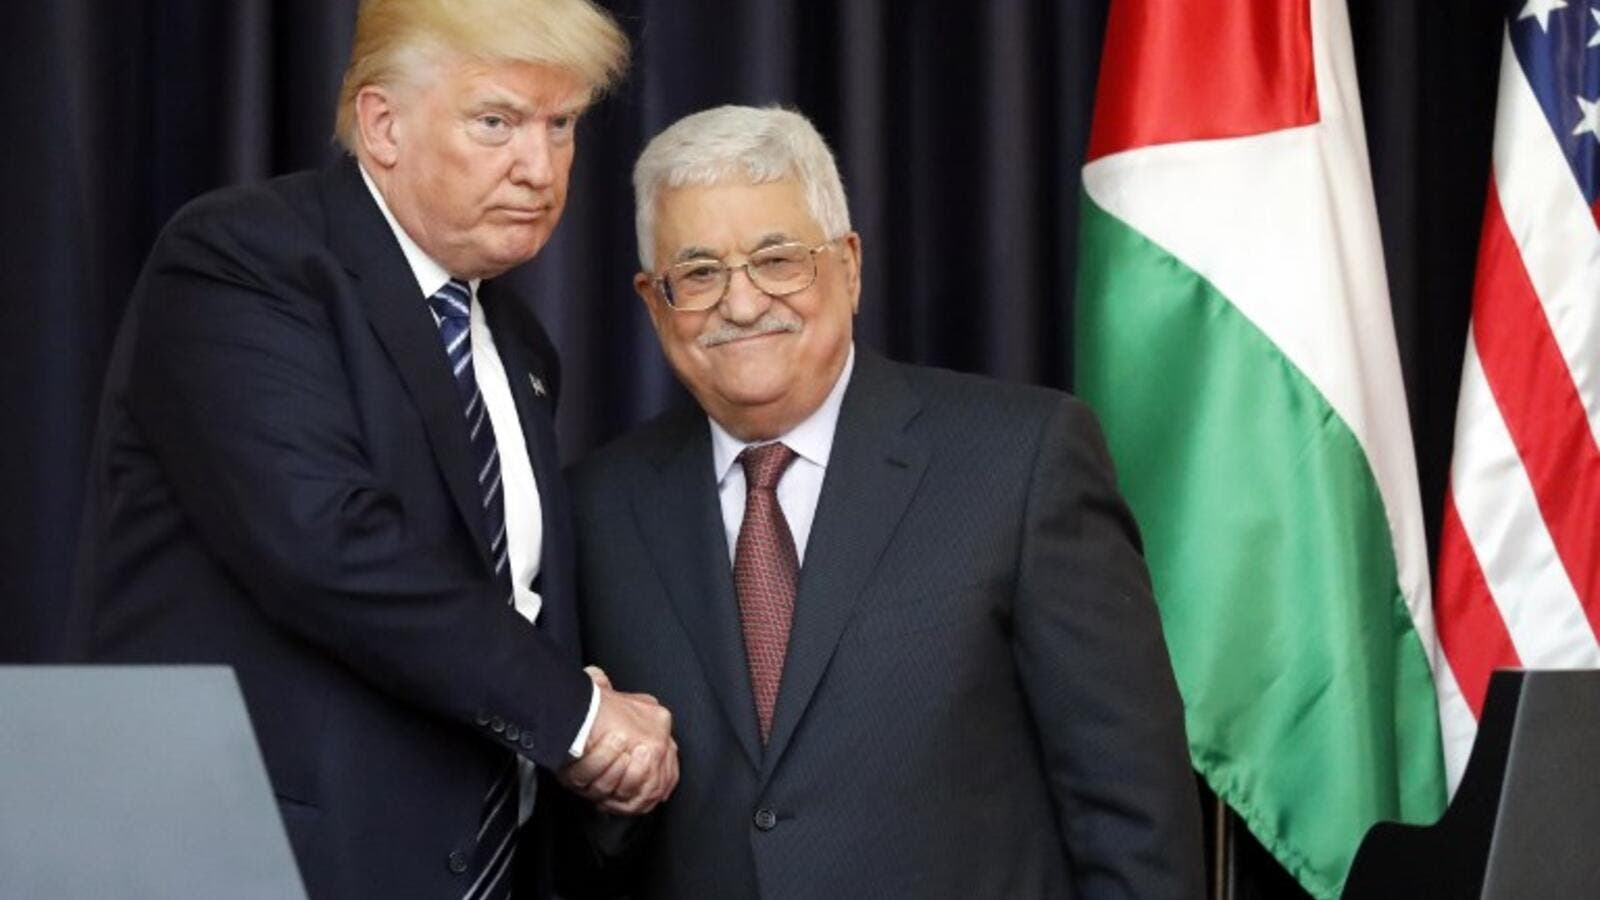 US President Donald Trump (L) and Palestinian leader Mahmud Abbas shake hands during a joint press conference at the presidential palace in the West Bank city of Bethlehem on May 23, 2017. (AFP/Thomas Coex)